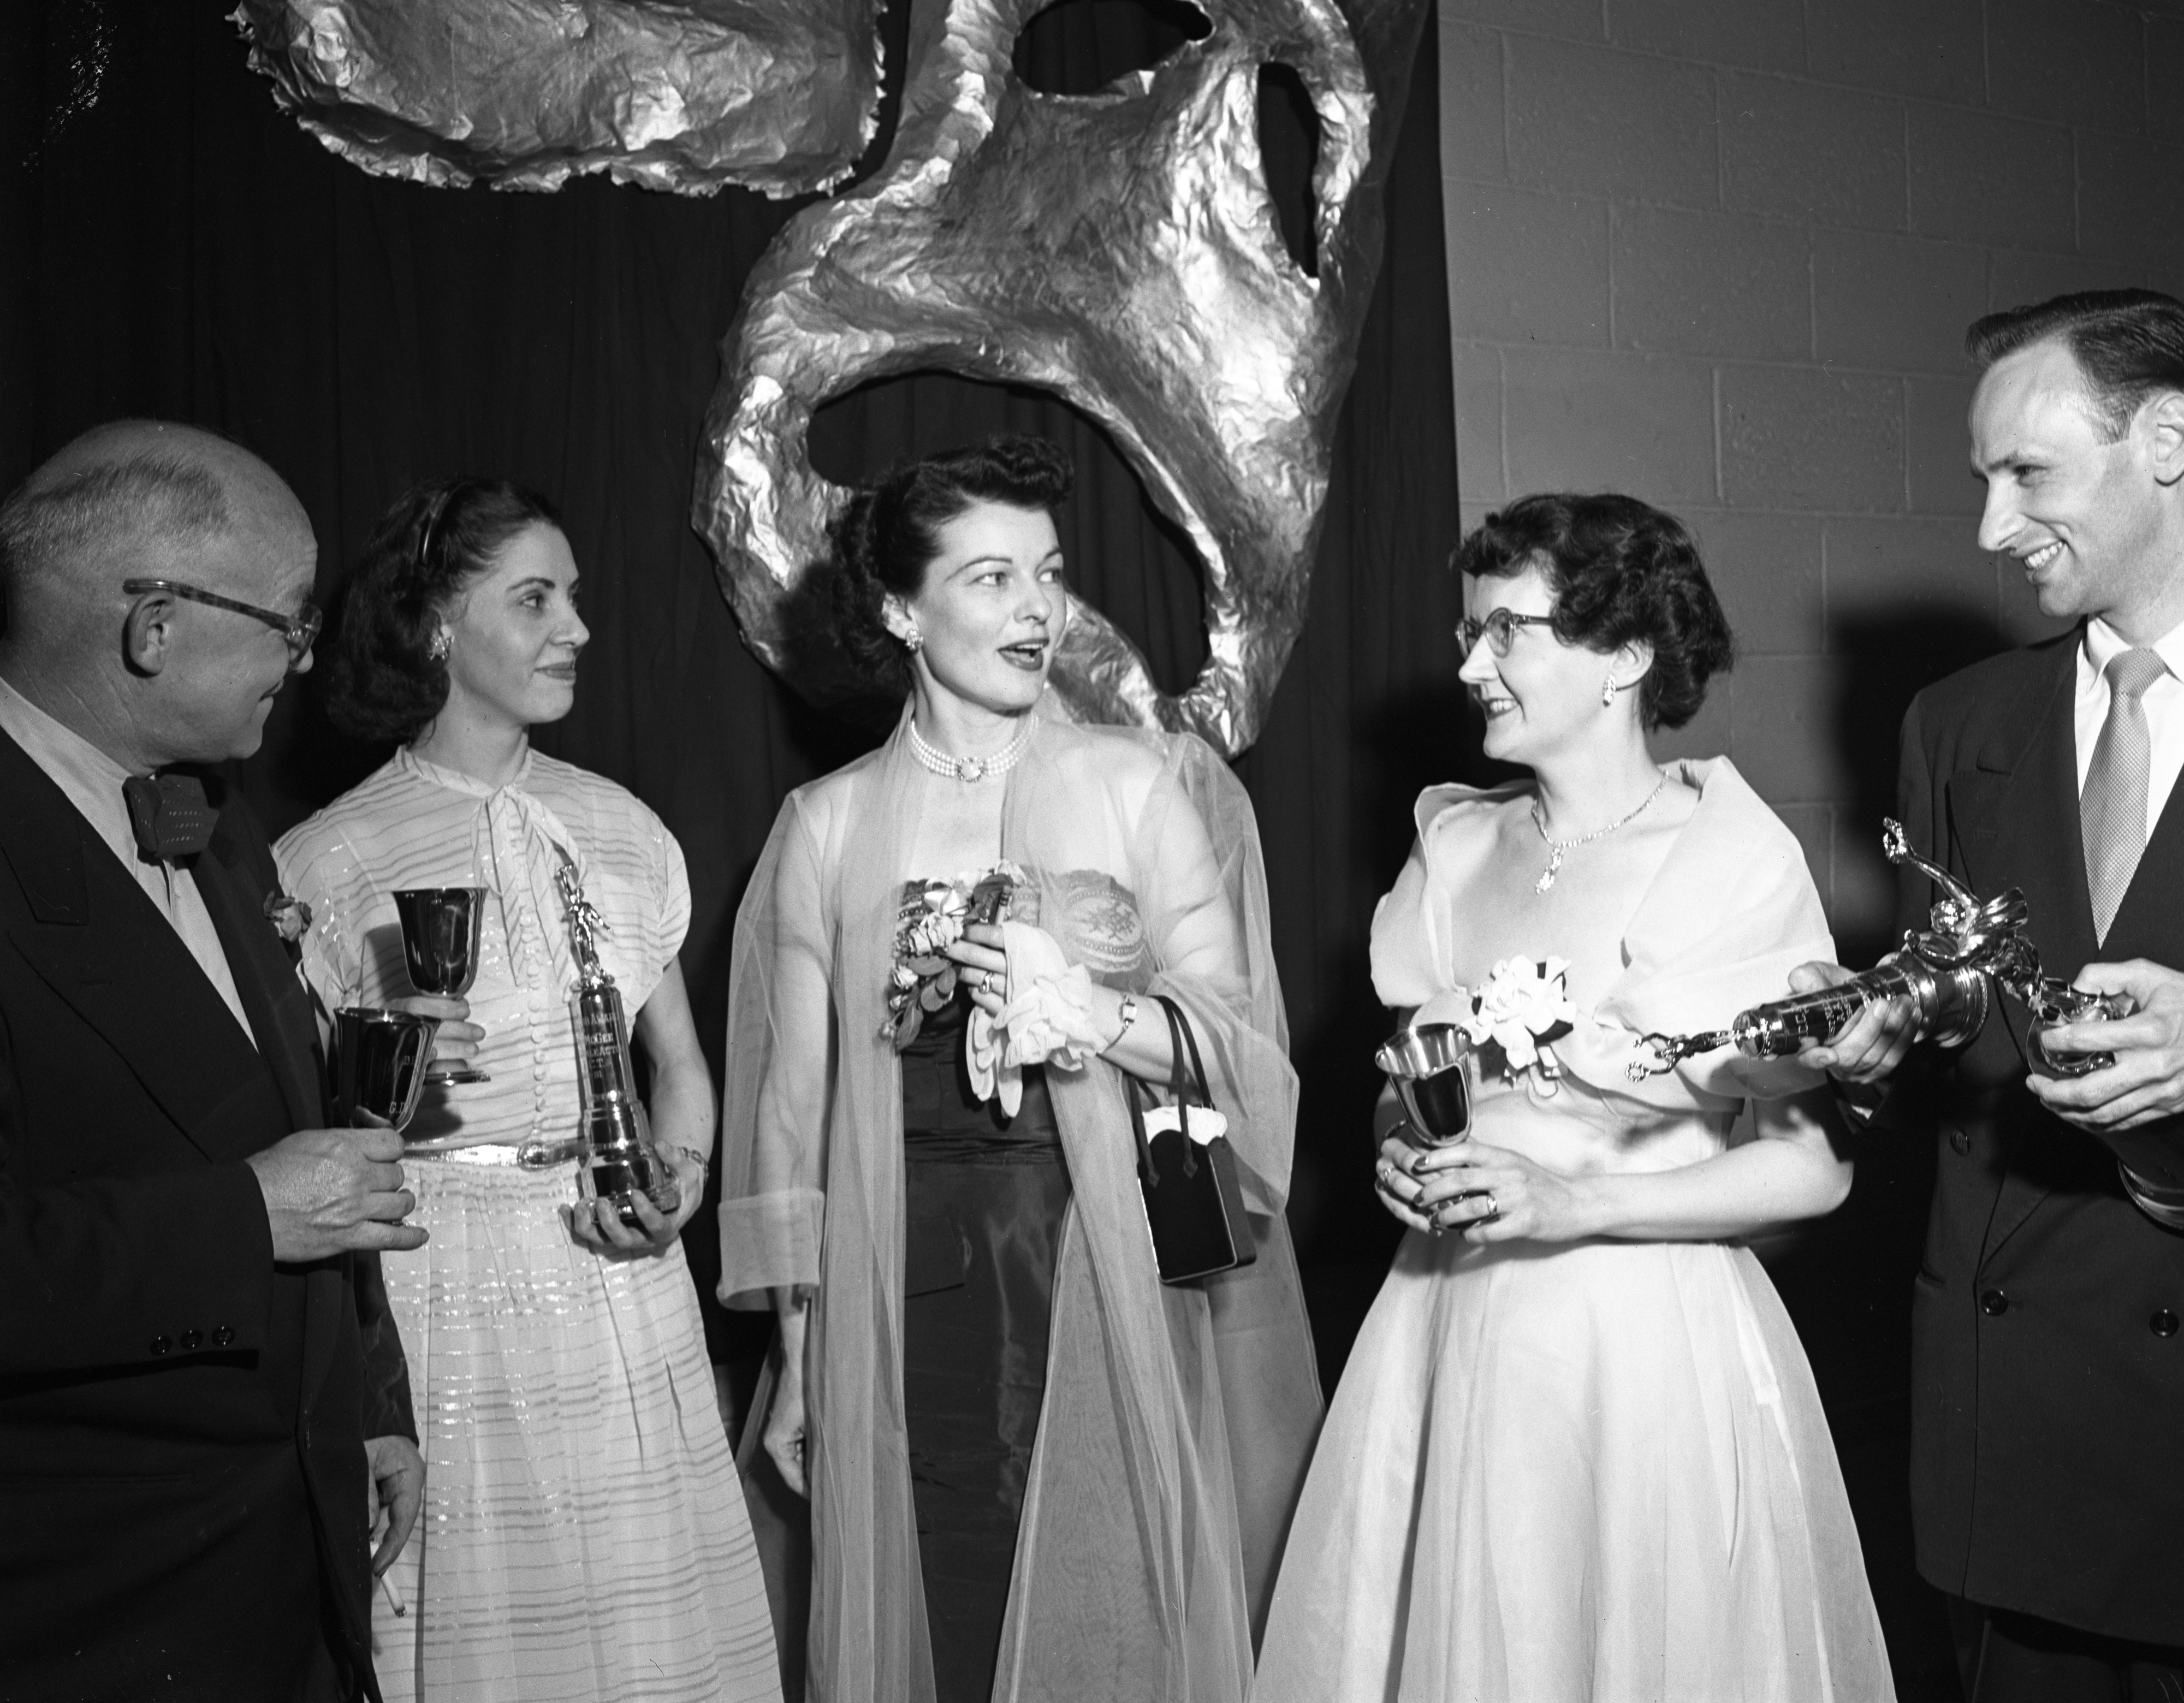 Ann Arbor Civic Theatre 1951 Awards Winners and Special Guest Ruth Hussey, June 1951 image